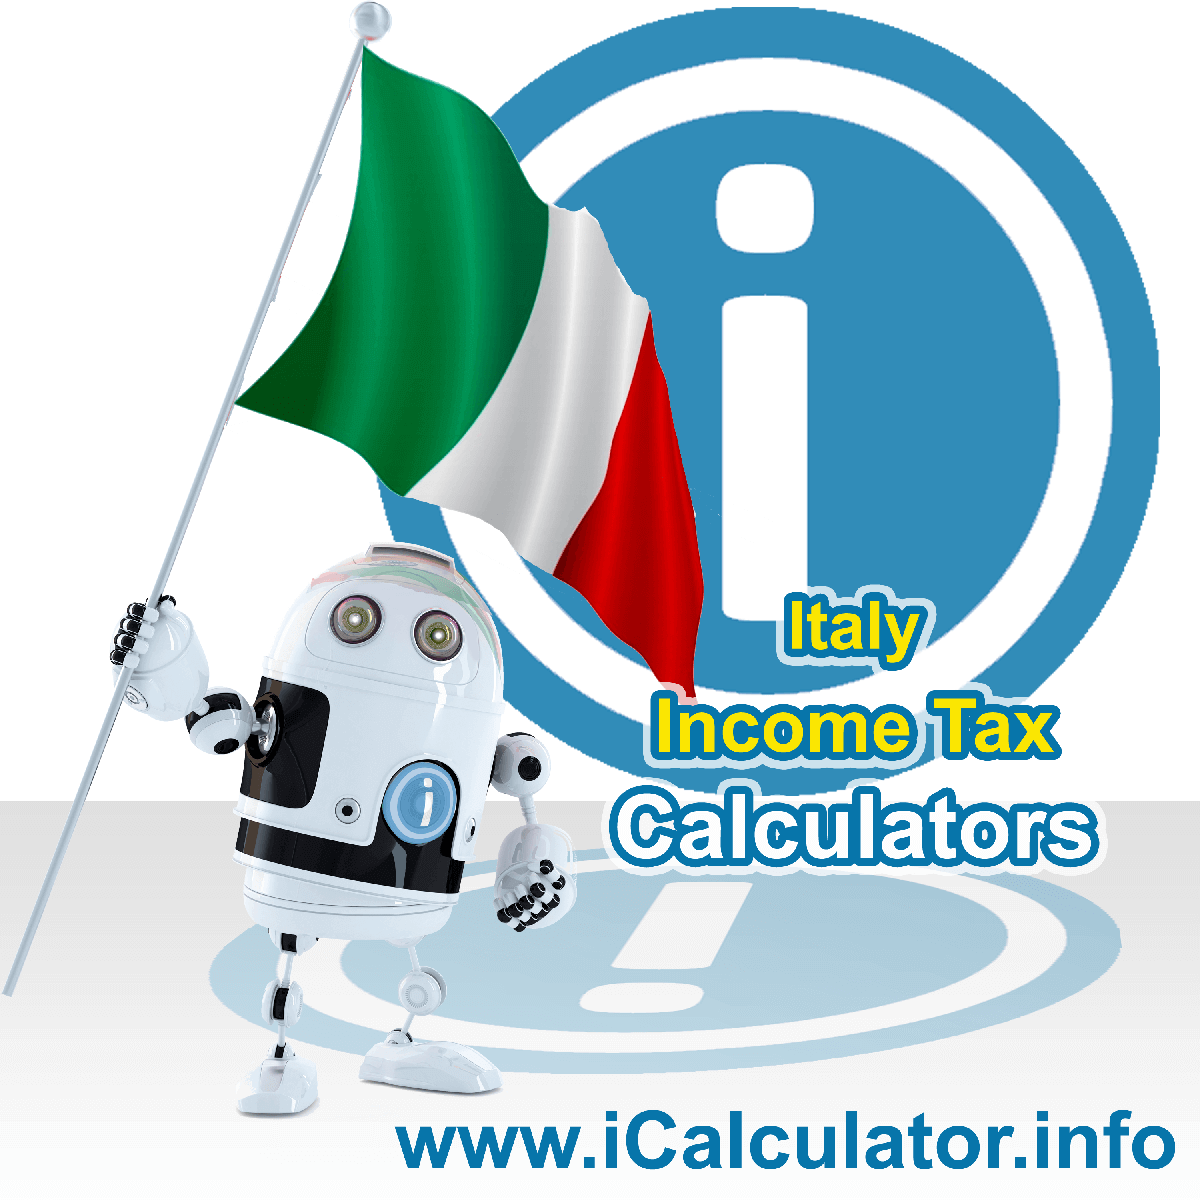 Italy Income Tax Calculator. This image shows a new employer in Italy calculating the annual payroll costs based on multiple payroll payments in one year in Italy using the Italy income tax calculator to understand their payroll costs in Italy in 2020